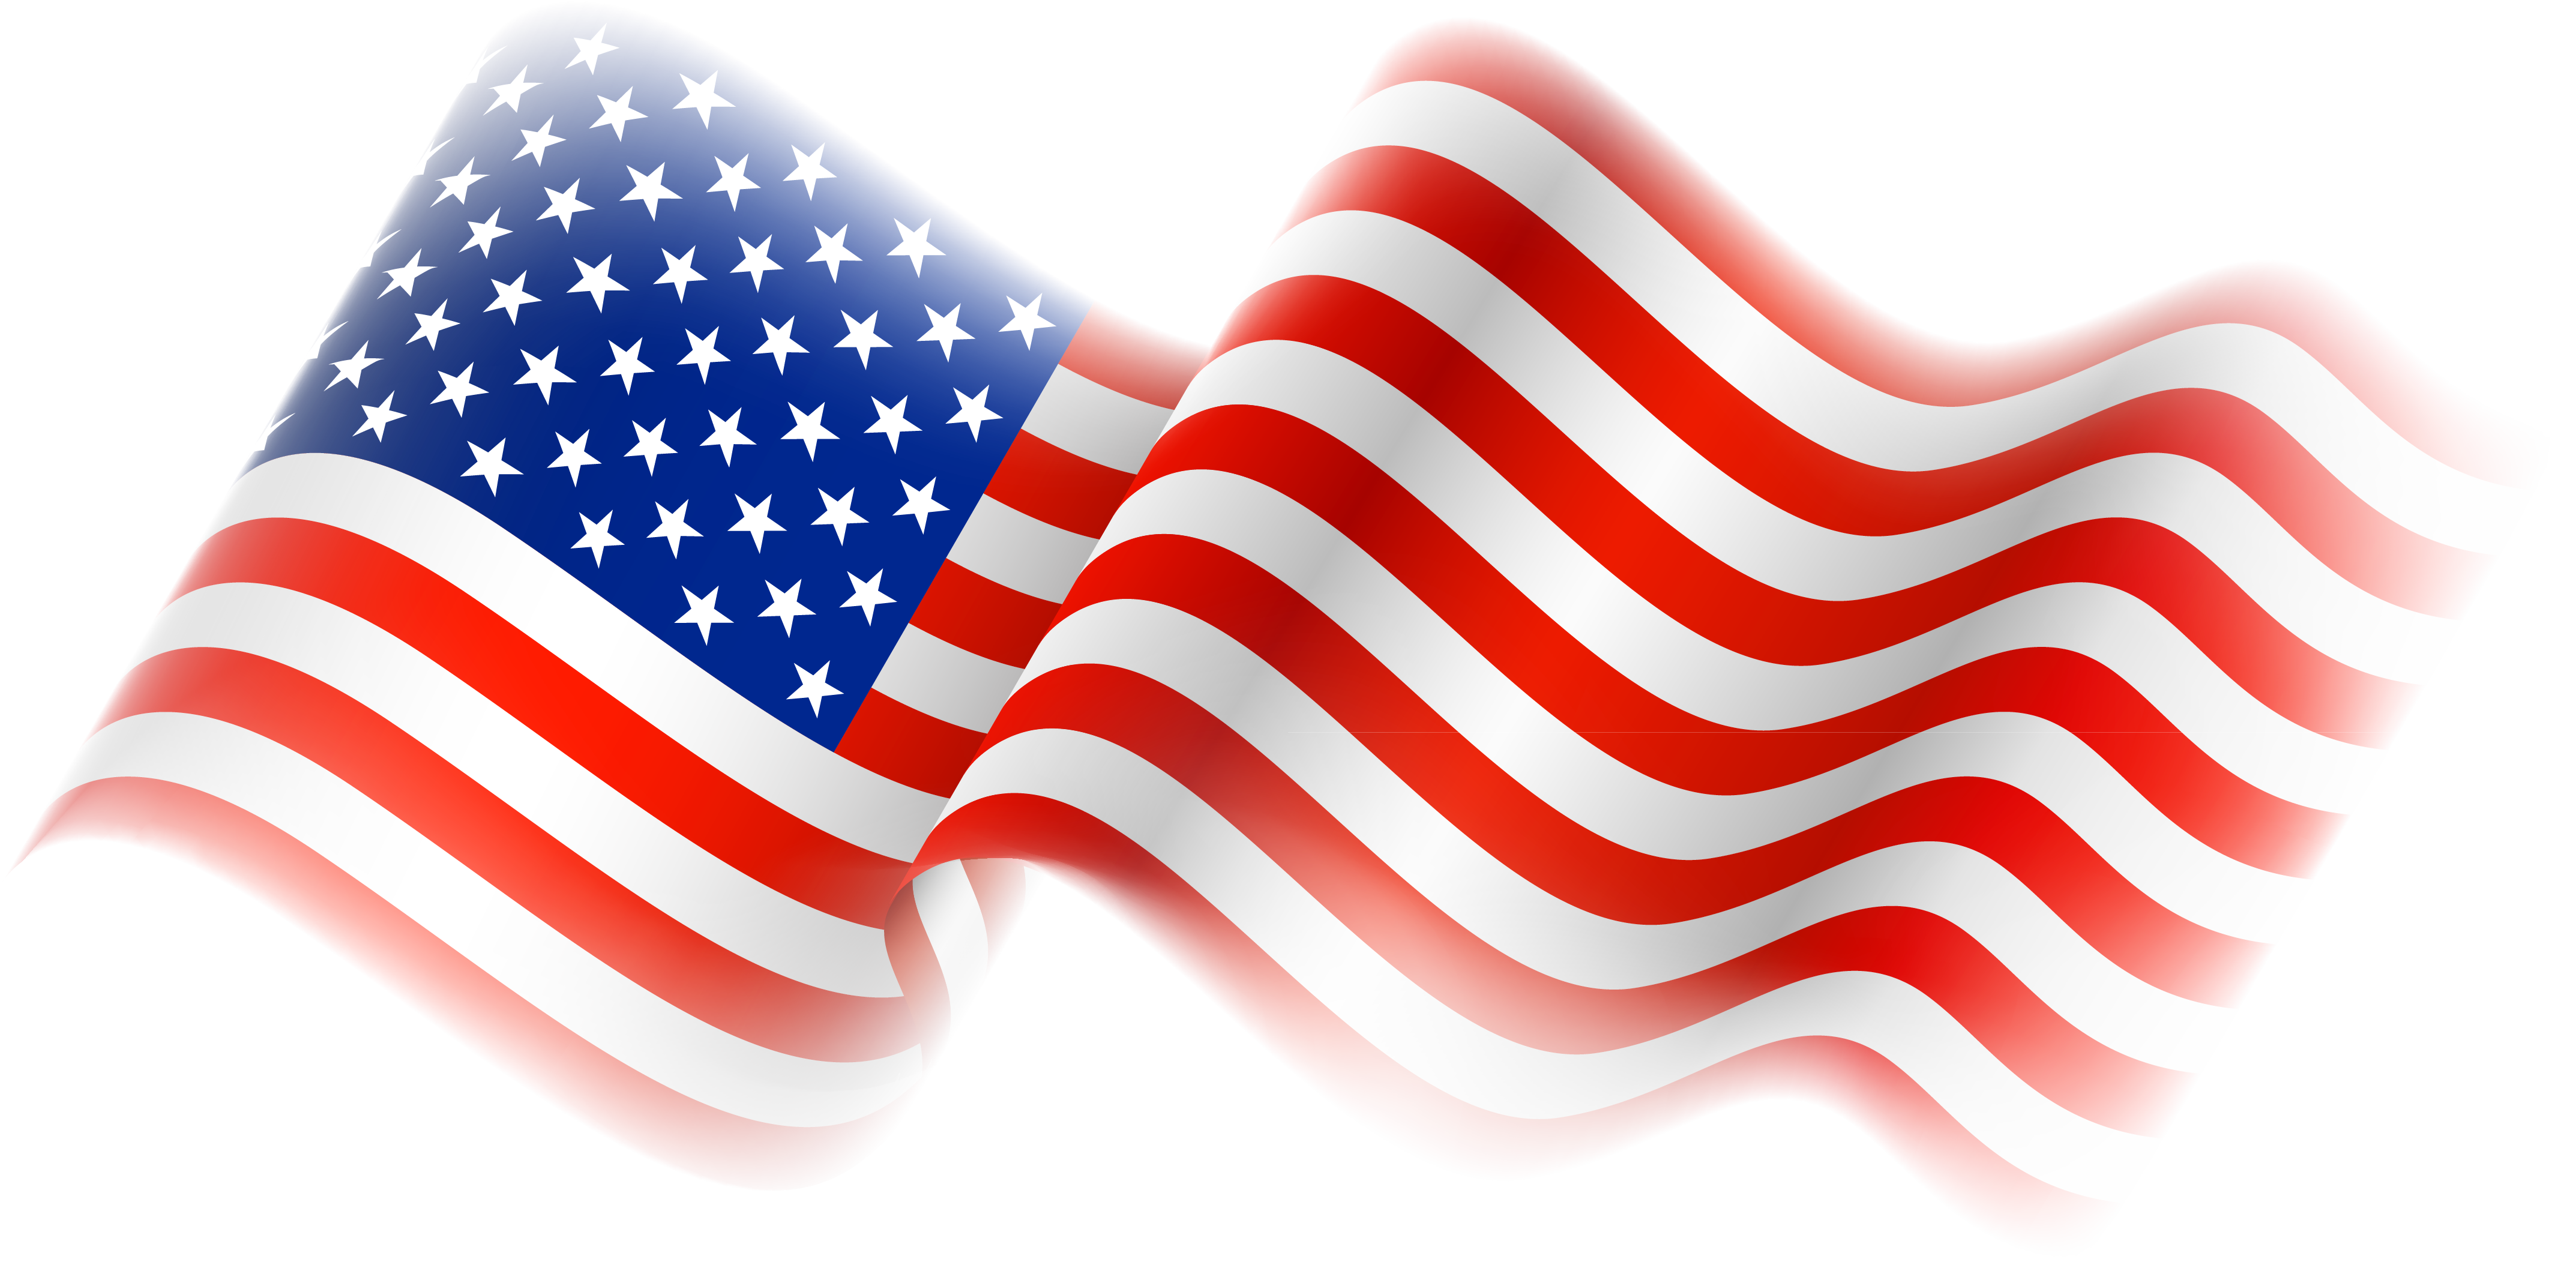 Flag clipart #7, Download drawings